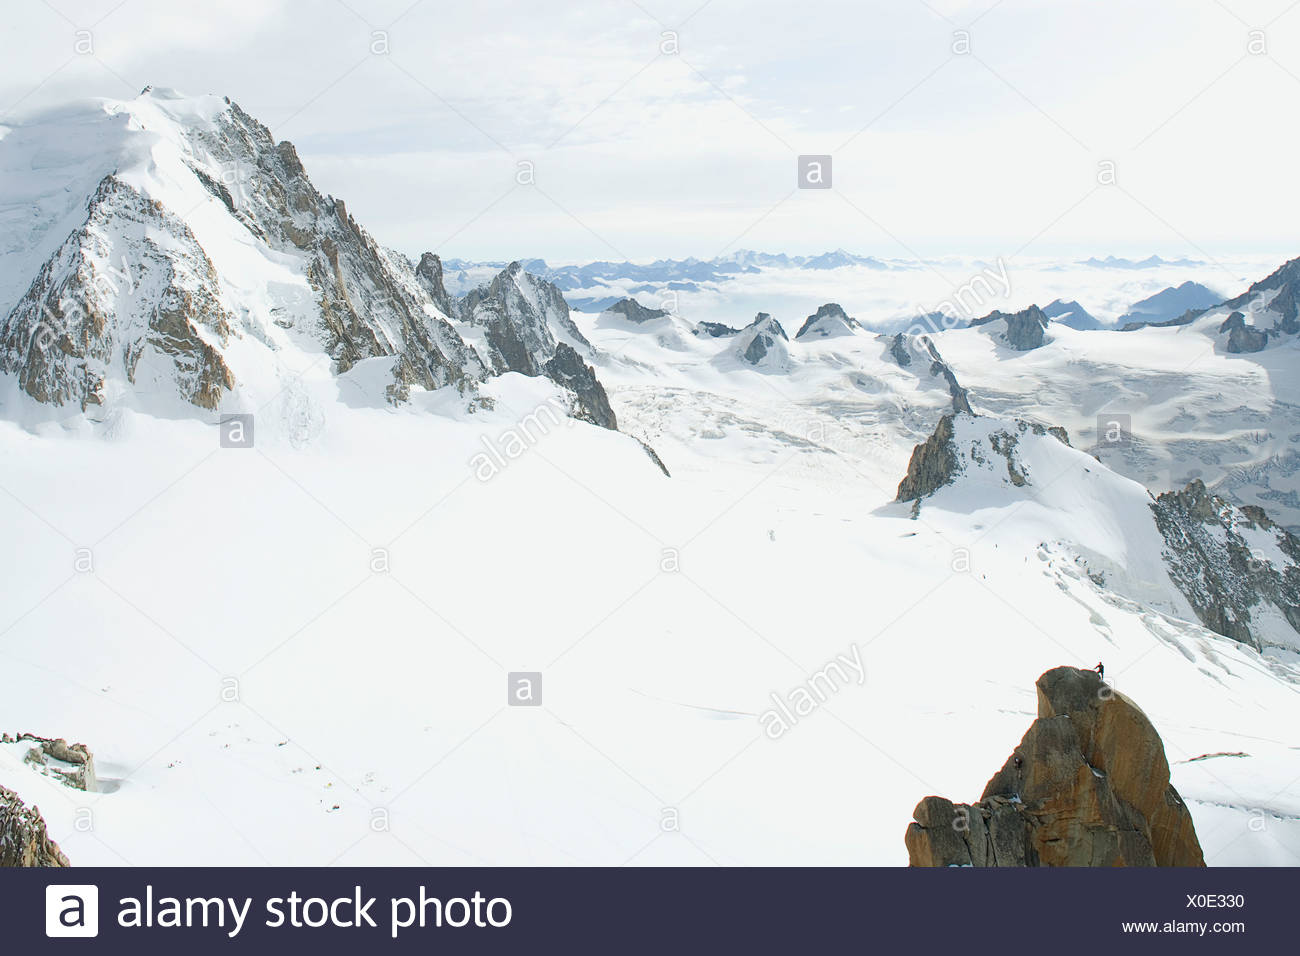 Italy - France, Mont Blanc, view of Vallee Blanche from the Aiguille du Midi Stock Photo